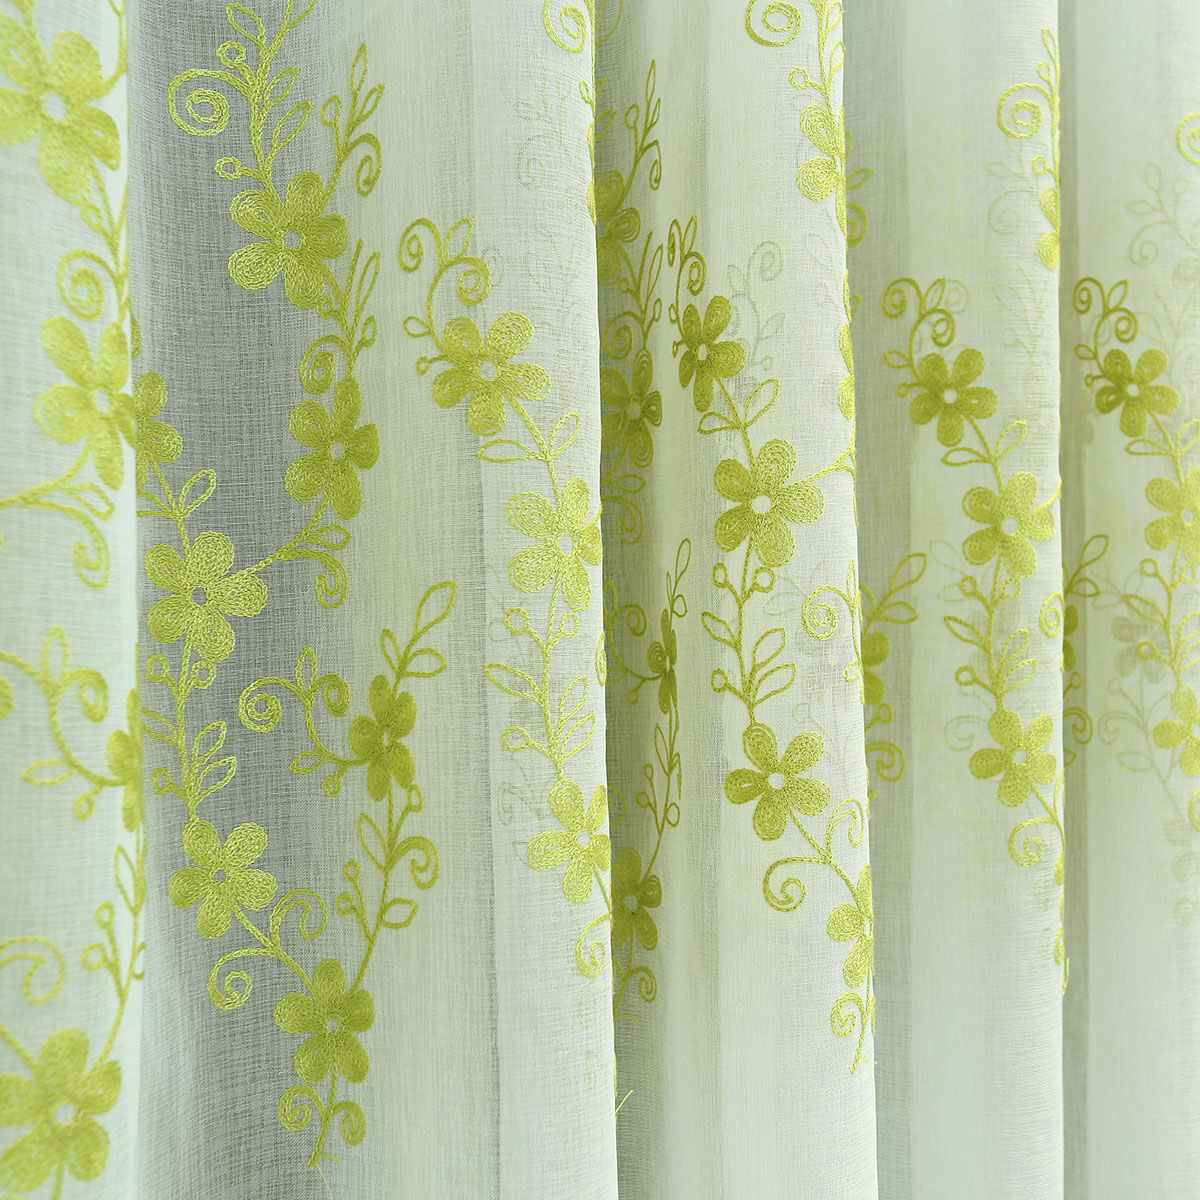 Green lined voile curtains